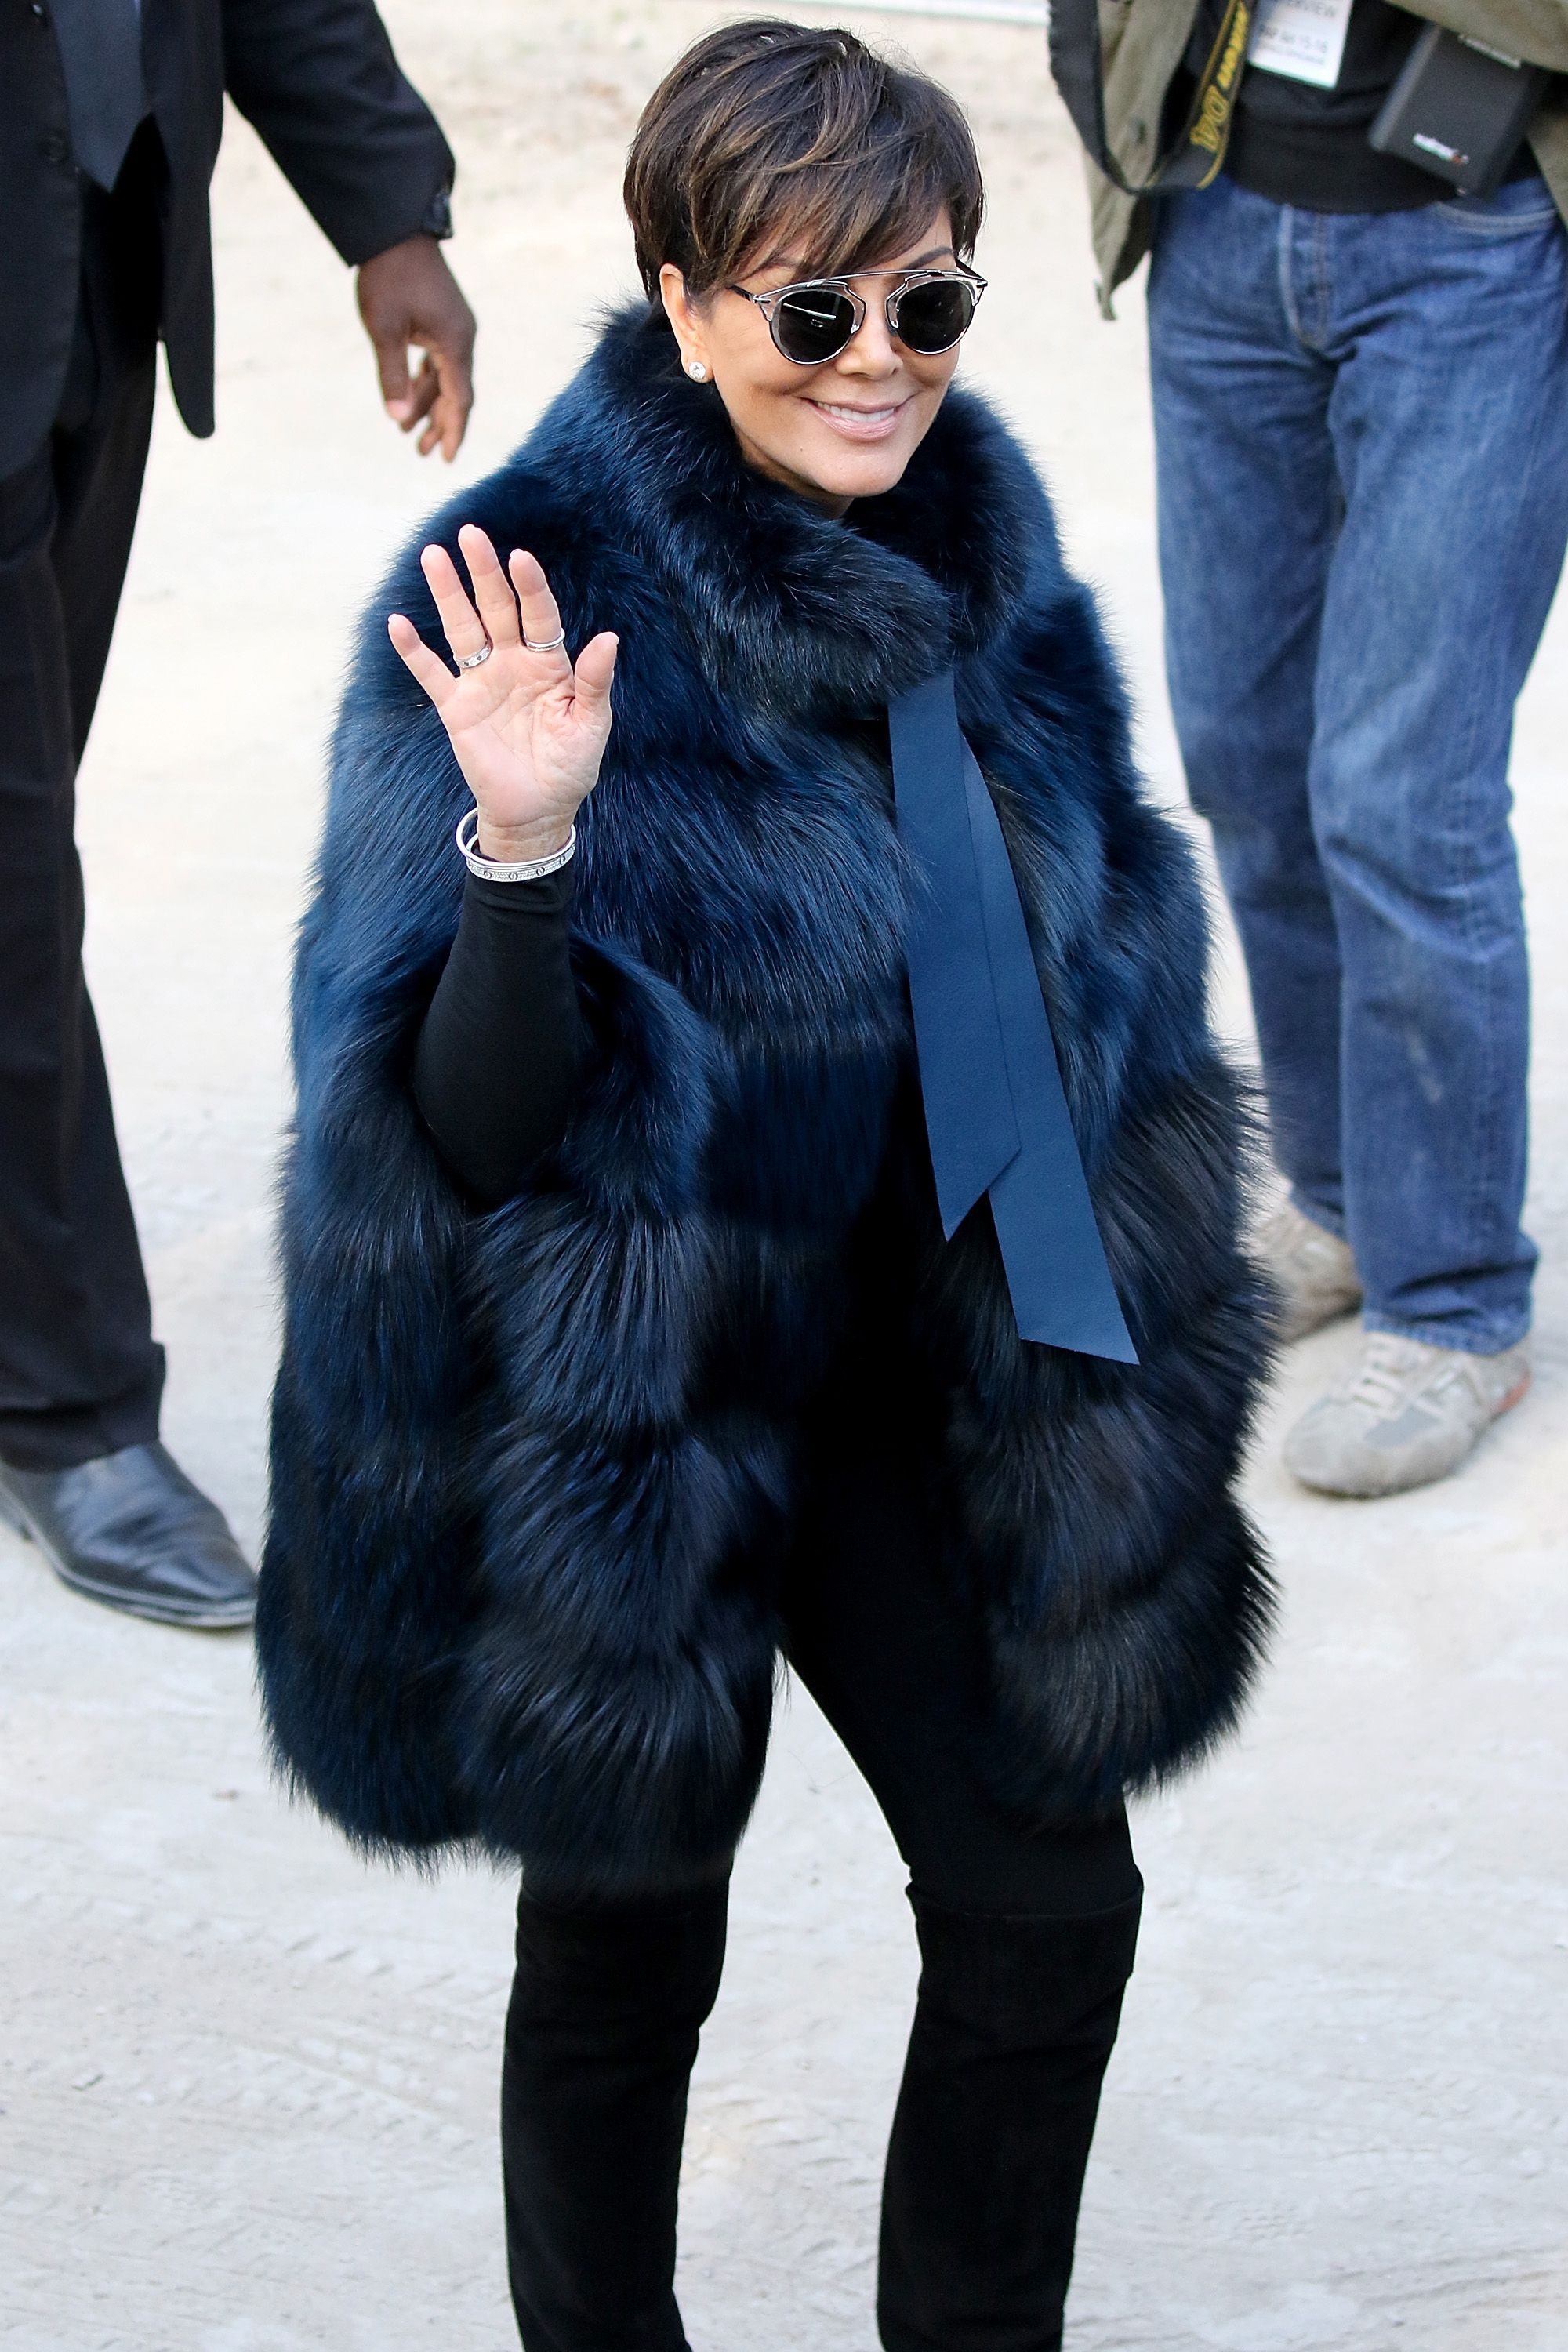 Kris Jenner panics about potential pregnancy on 'KUWTK'